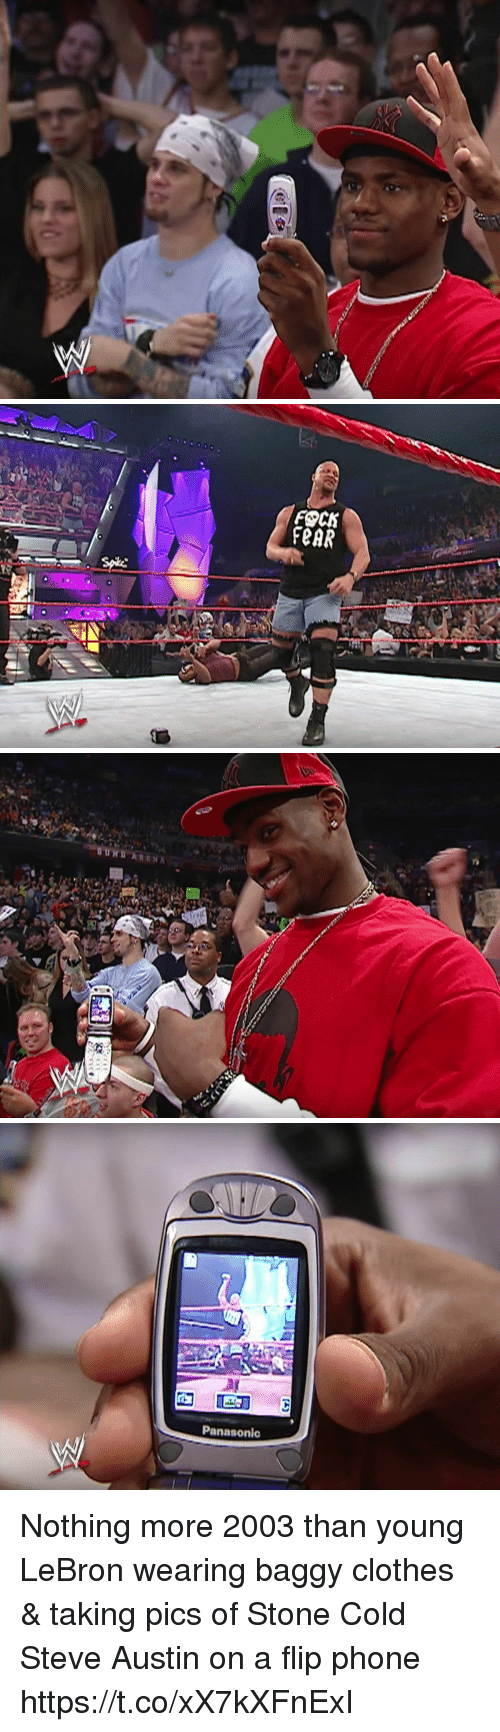 Clothes, Funny, and Phone: FOCK  FeAR   UND   Panasonic Nothing more 2003 than young LeBron wearing baggy clothes & taking pics of Stone Cold Steve Austin on a flip phone https://t.co/xX7kXFnExI